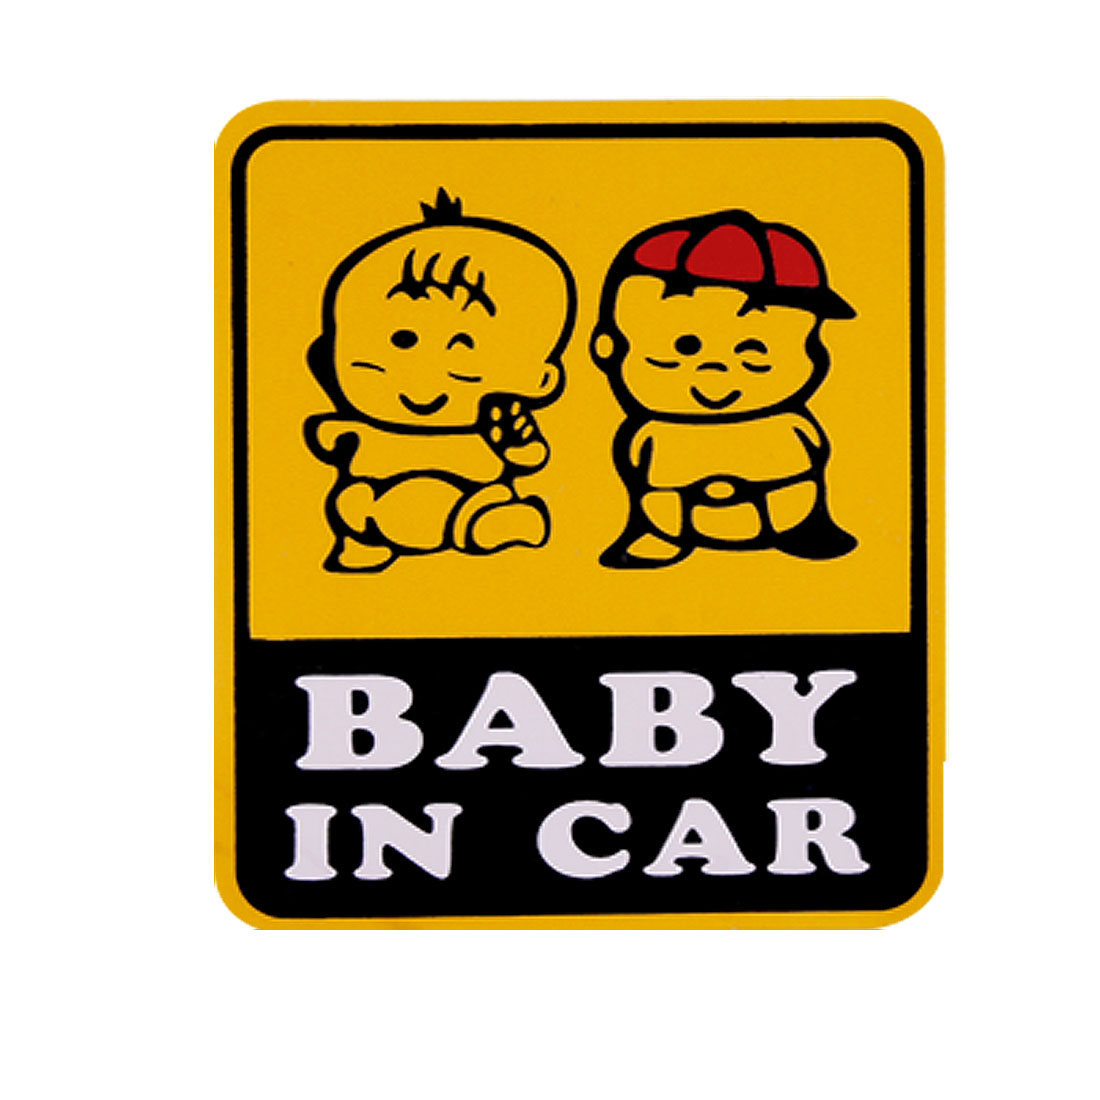 Bbay In Car Auto Square Vinyl Warning Decal Sticker